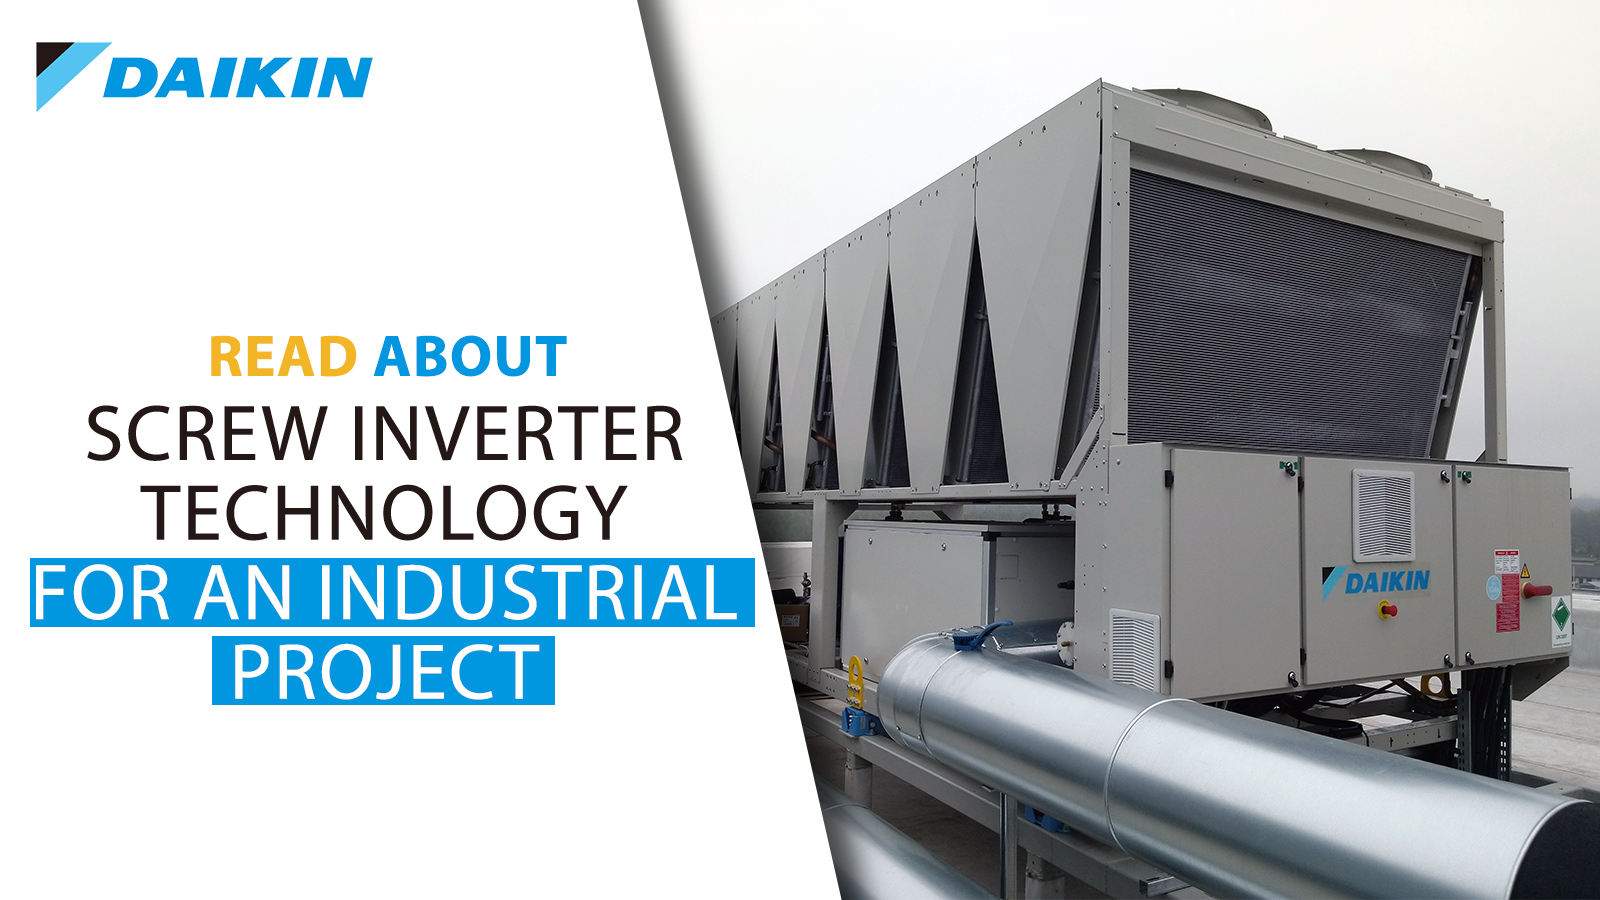 Screw Inverter technology for an industrial project